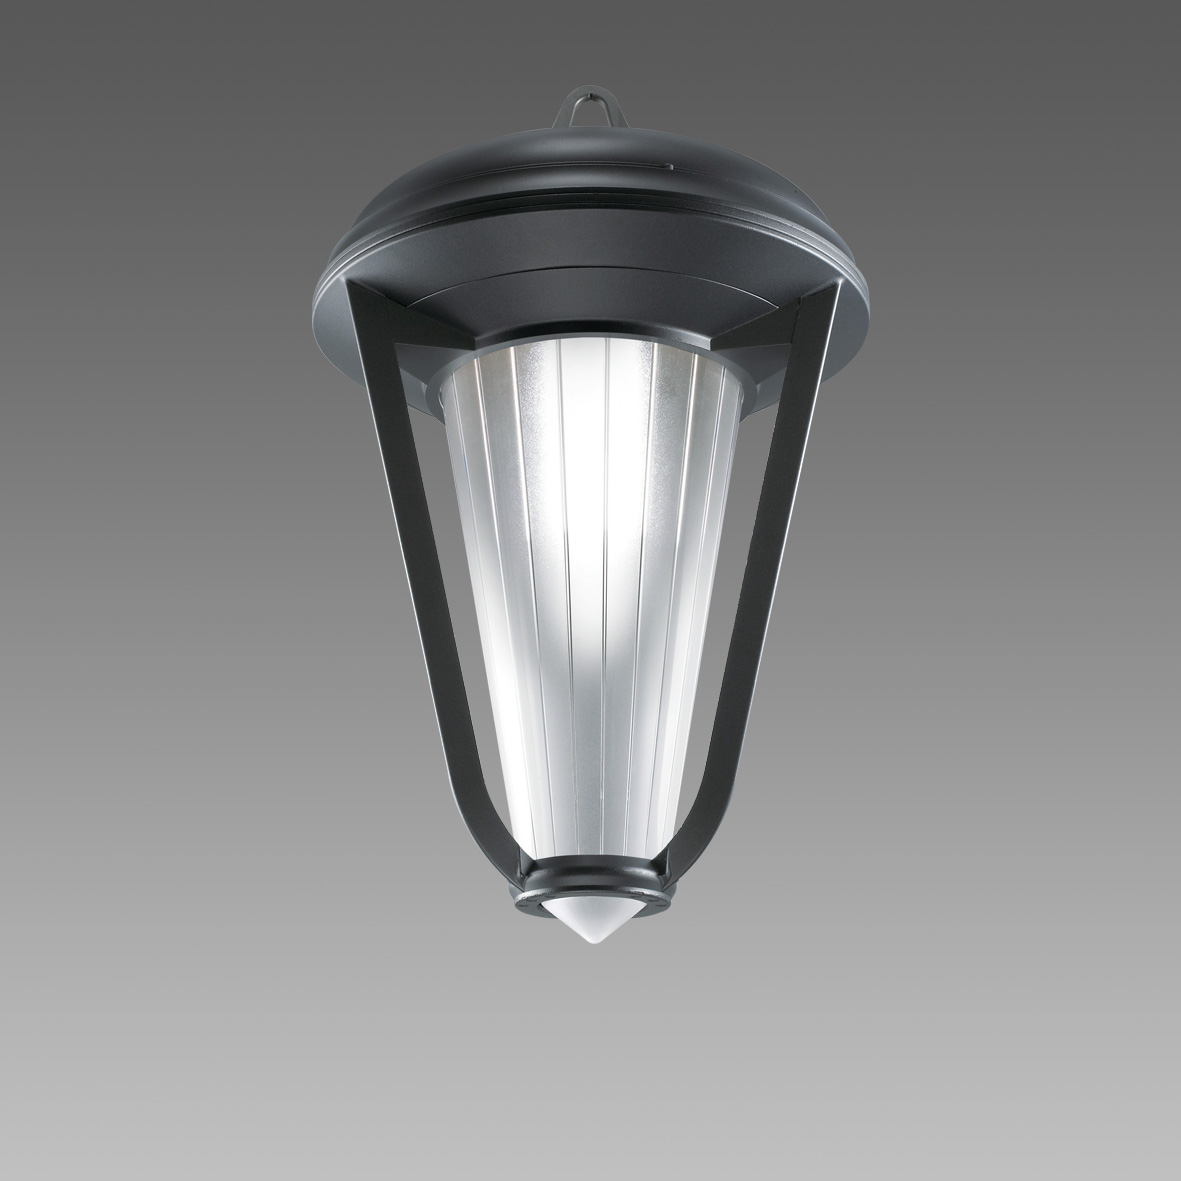 3214 Lucerna R4 suspension lamp